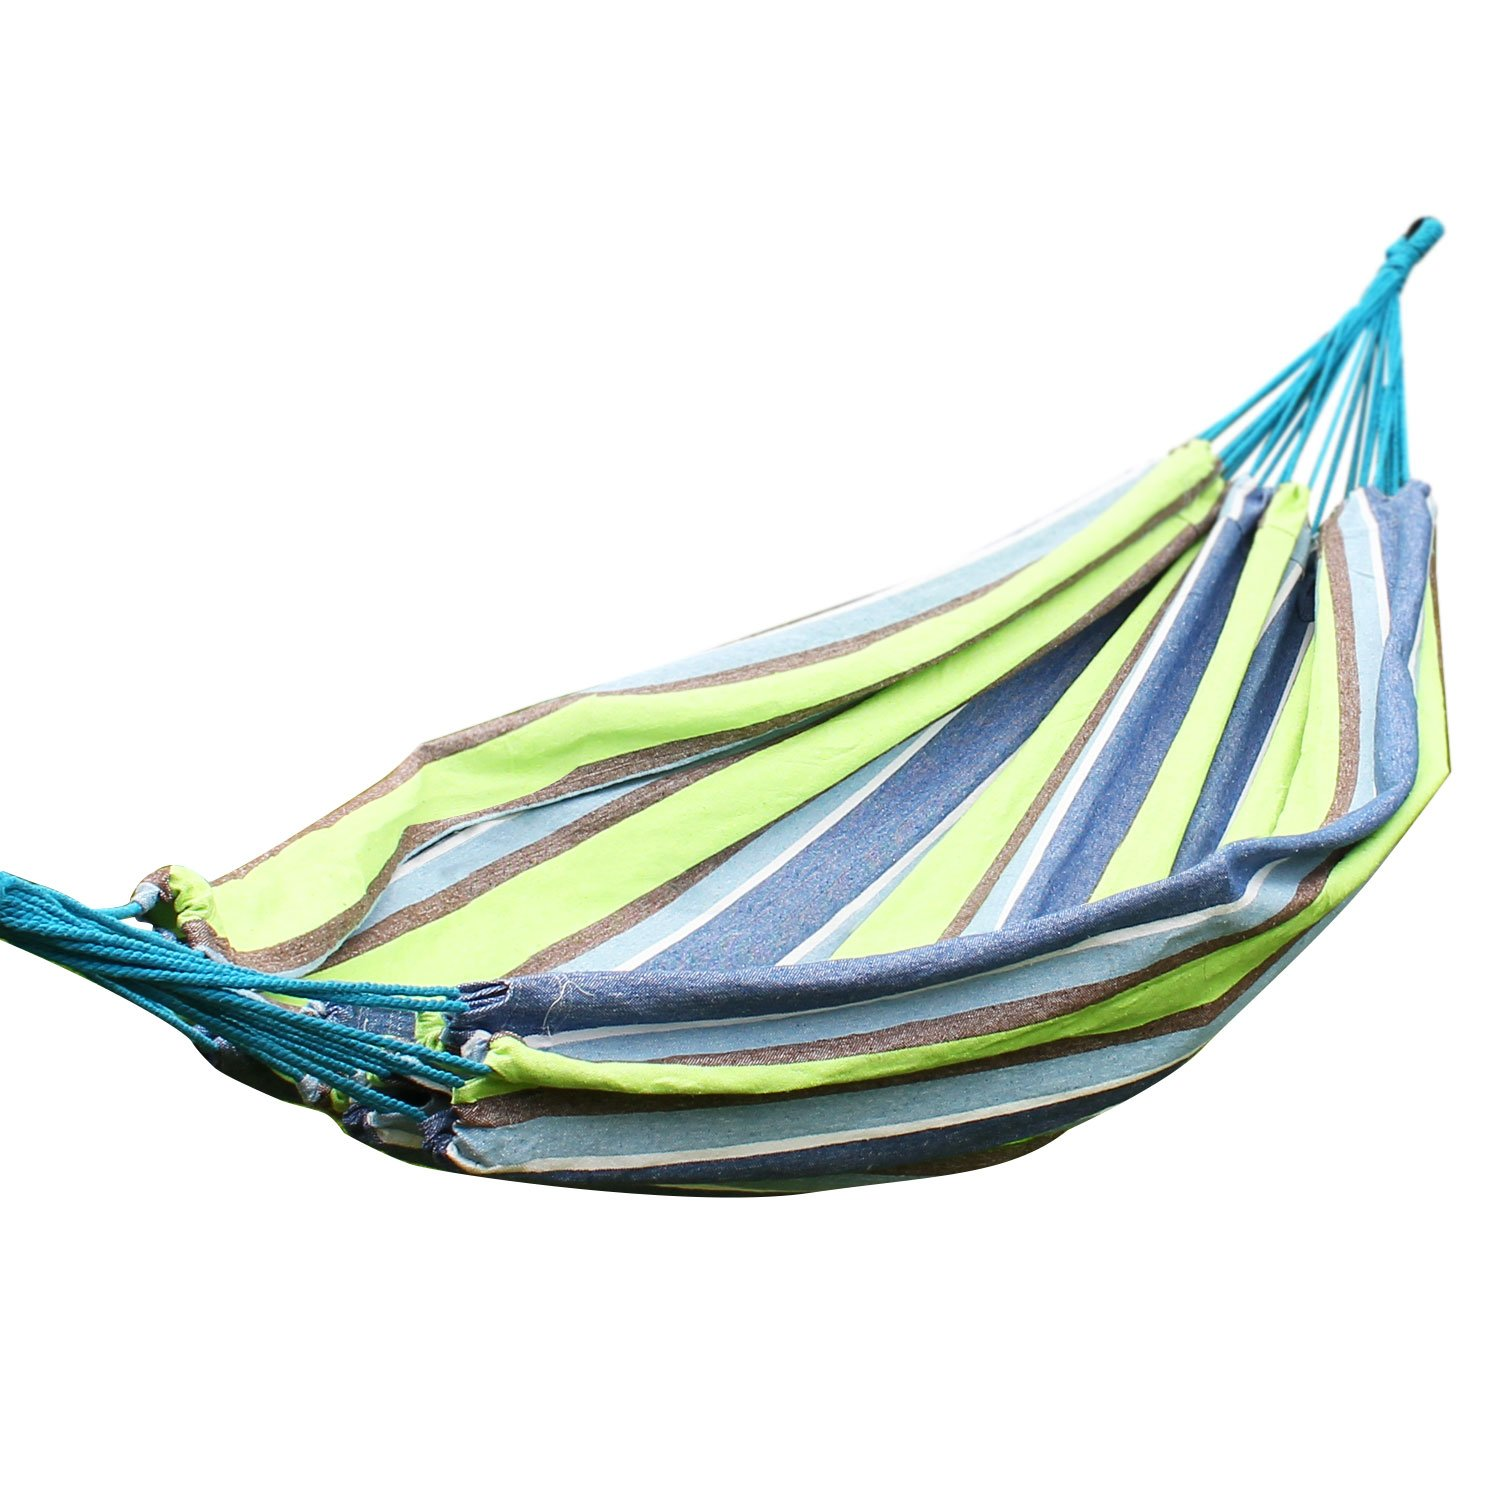 Adeco Naval-Style Cotton Fabric Canvas Sky Hammock Tree Hanging Suspended Outdoor Indoor Swing Sleep Bed, Teutonic White Color, 63 Wide